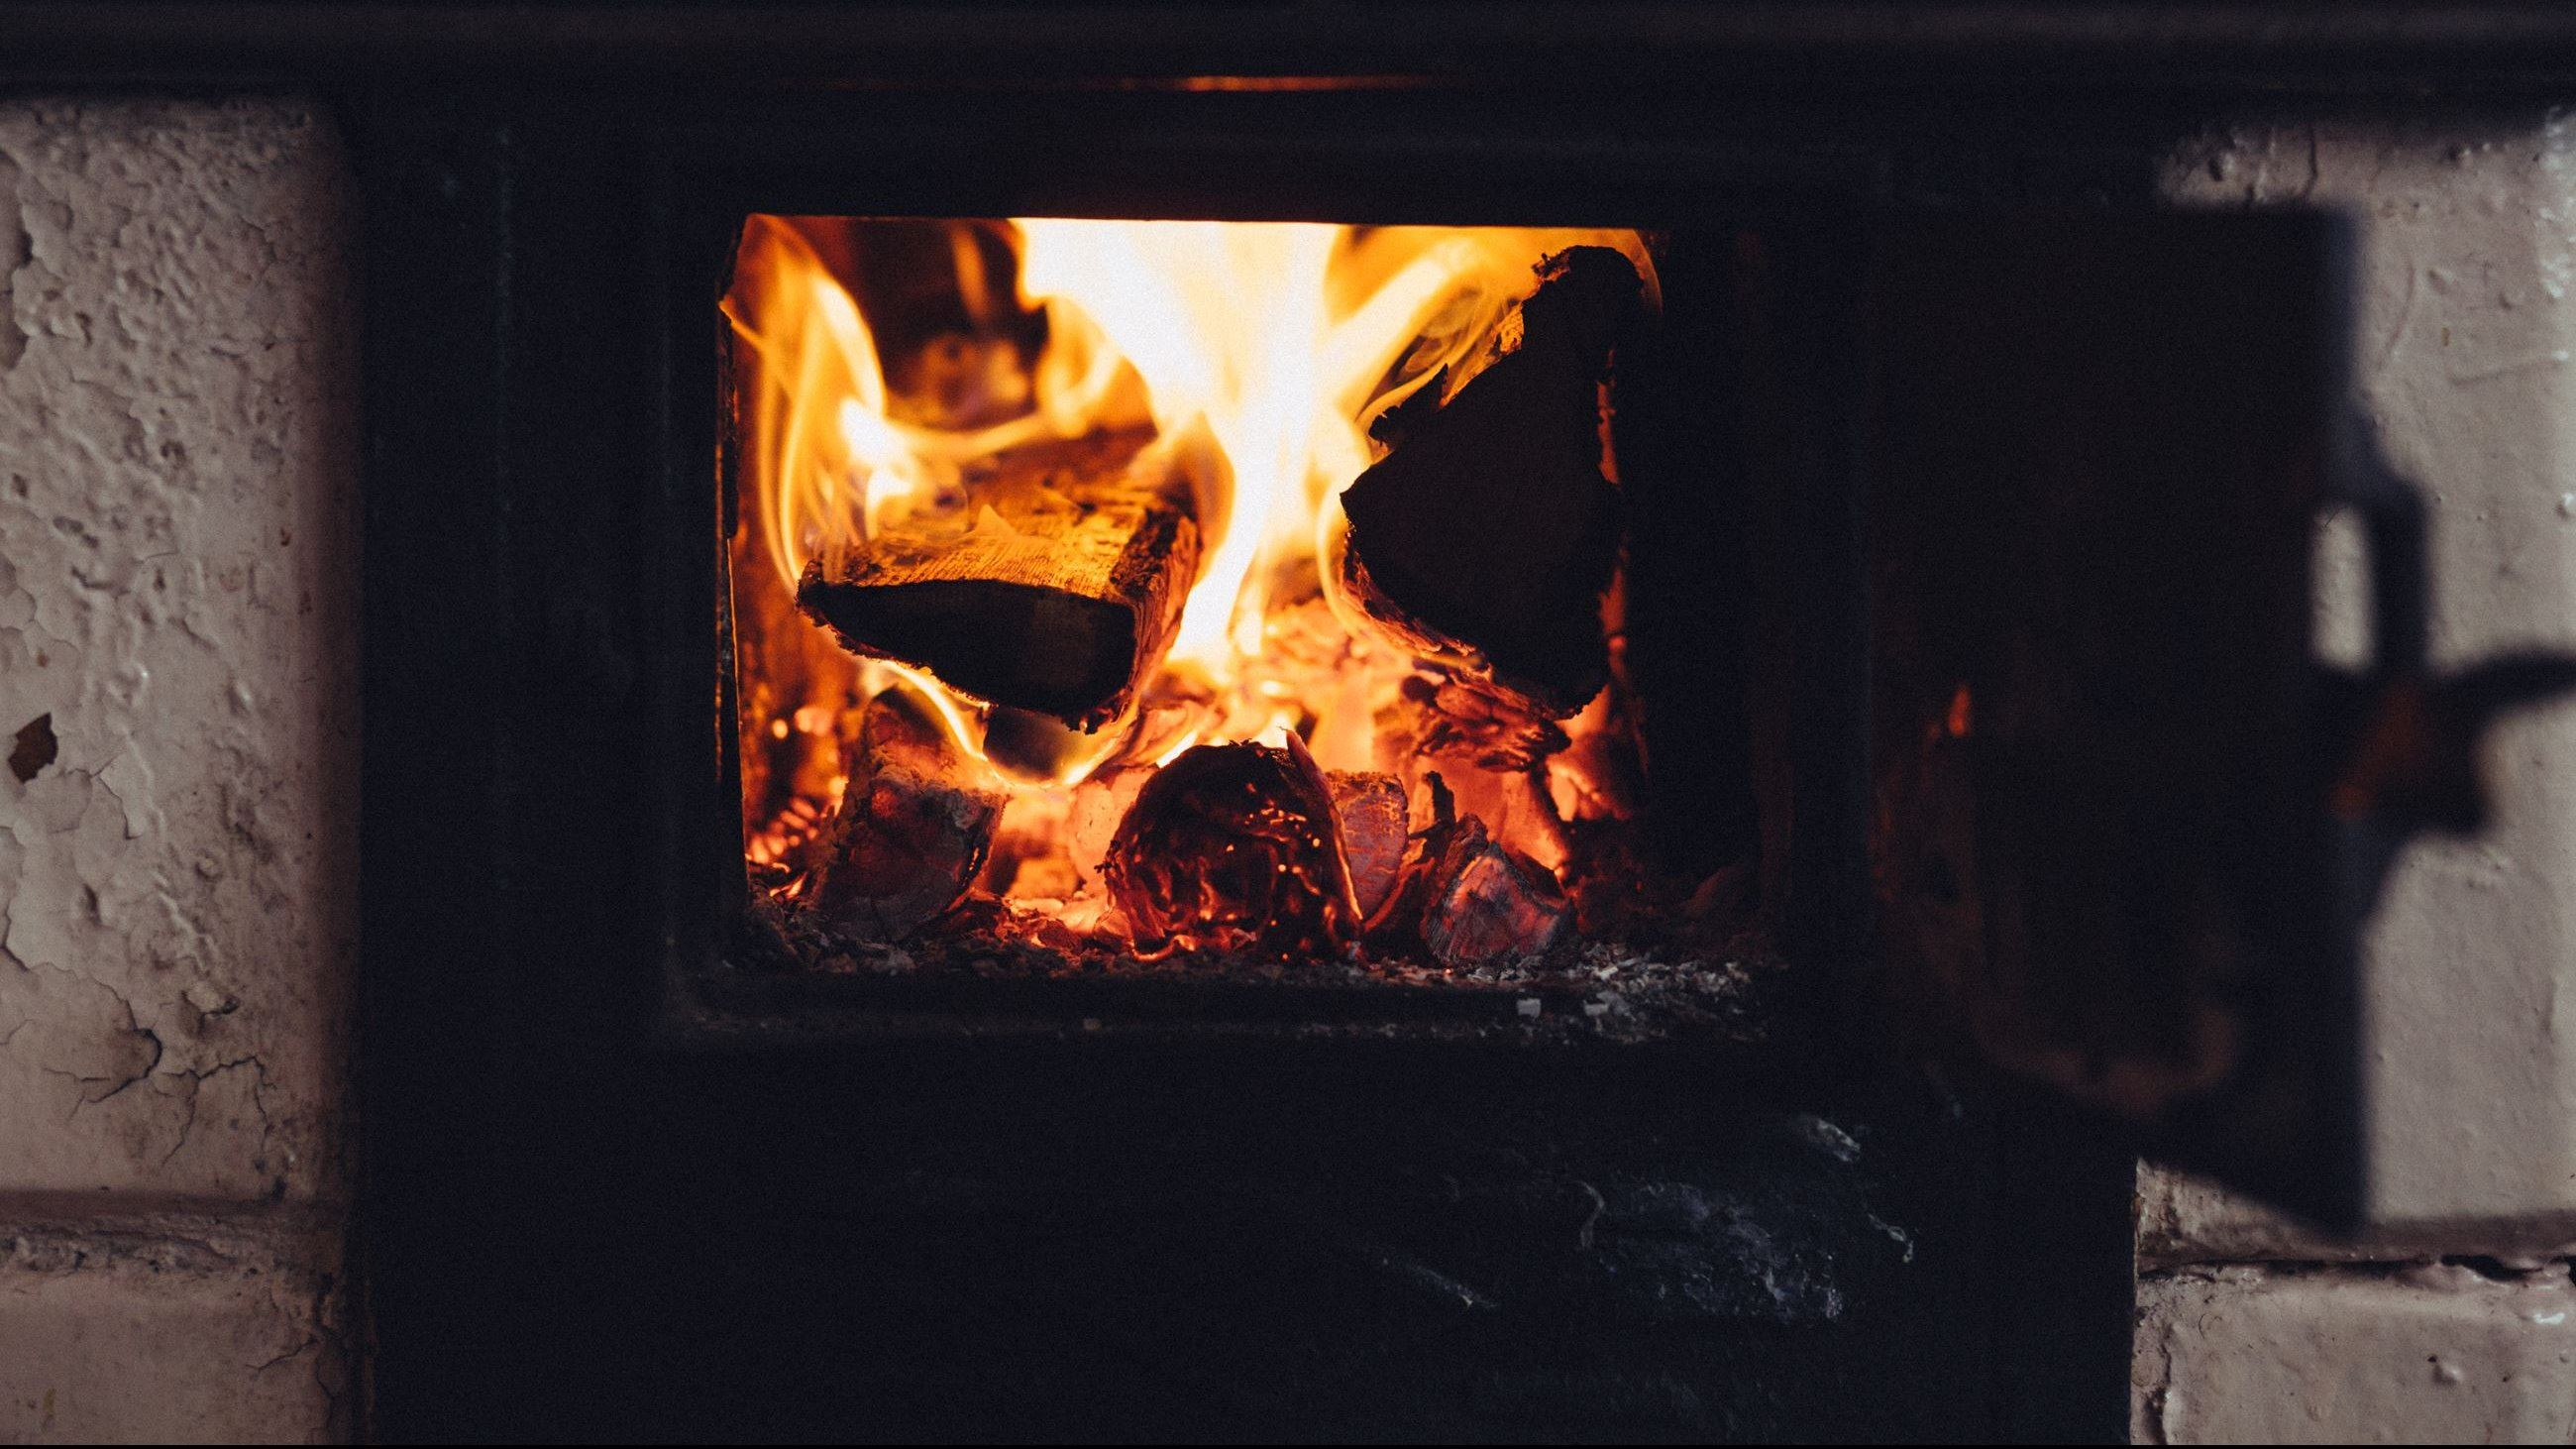 furnace photo (fireplace)